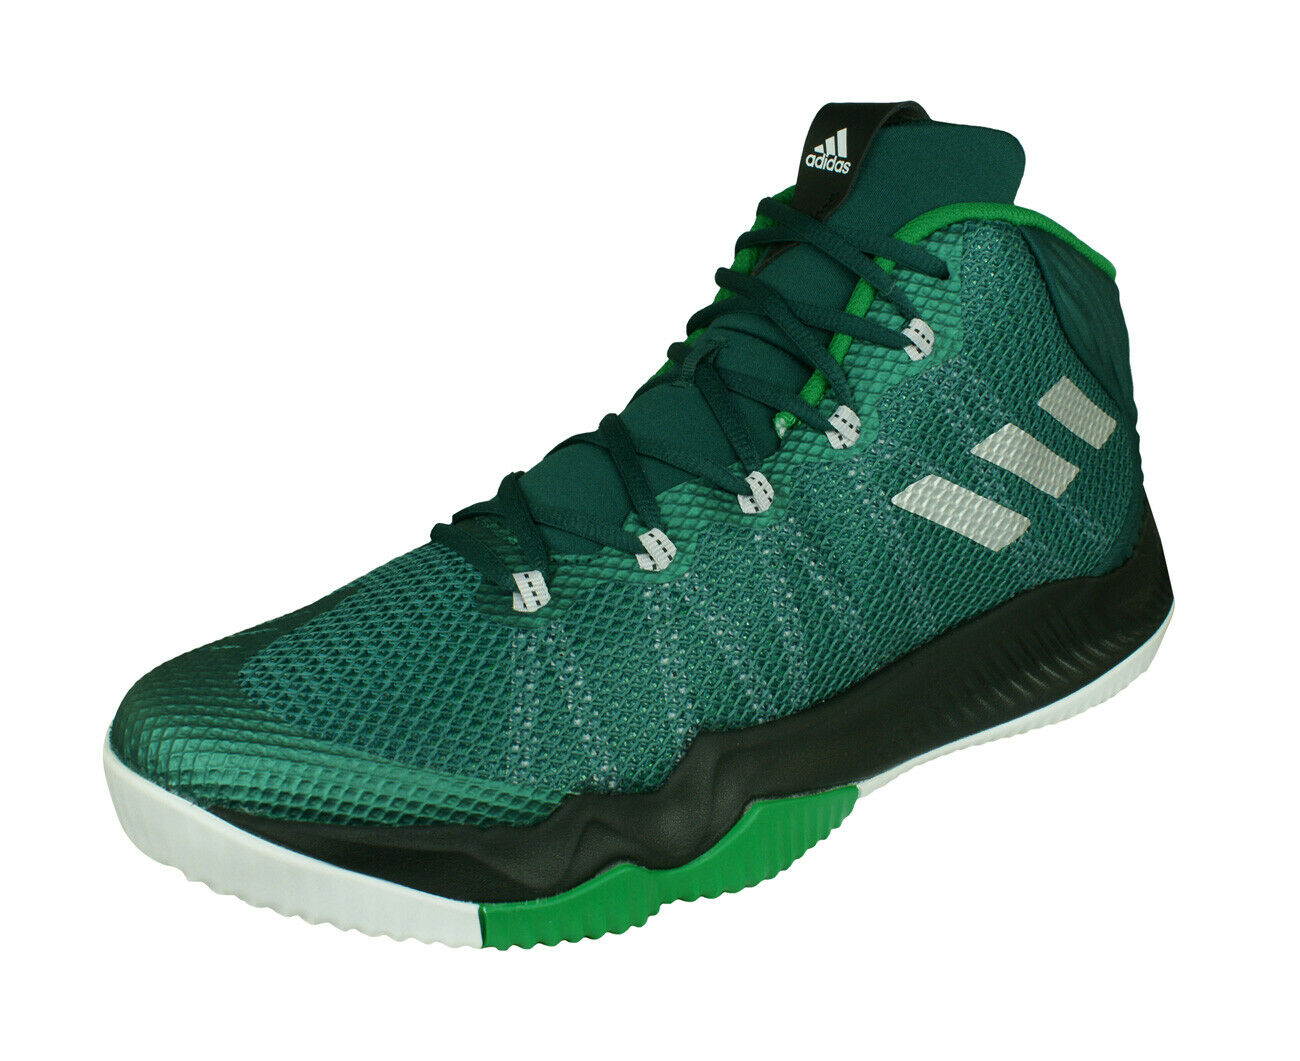 Adidas Crazy Hustle Mens Basketball Sneaker-Boots Court Ankle Mid-Top Green